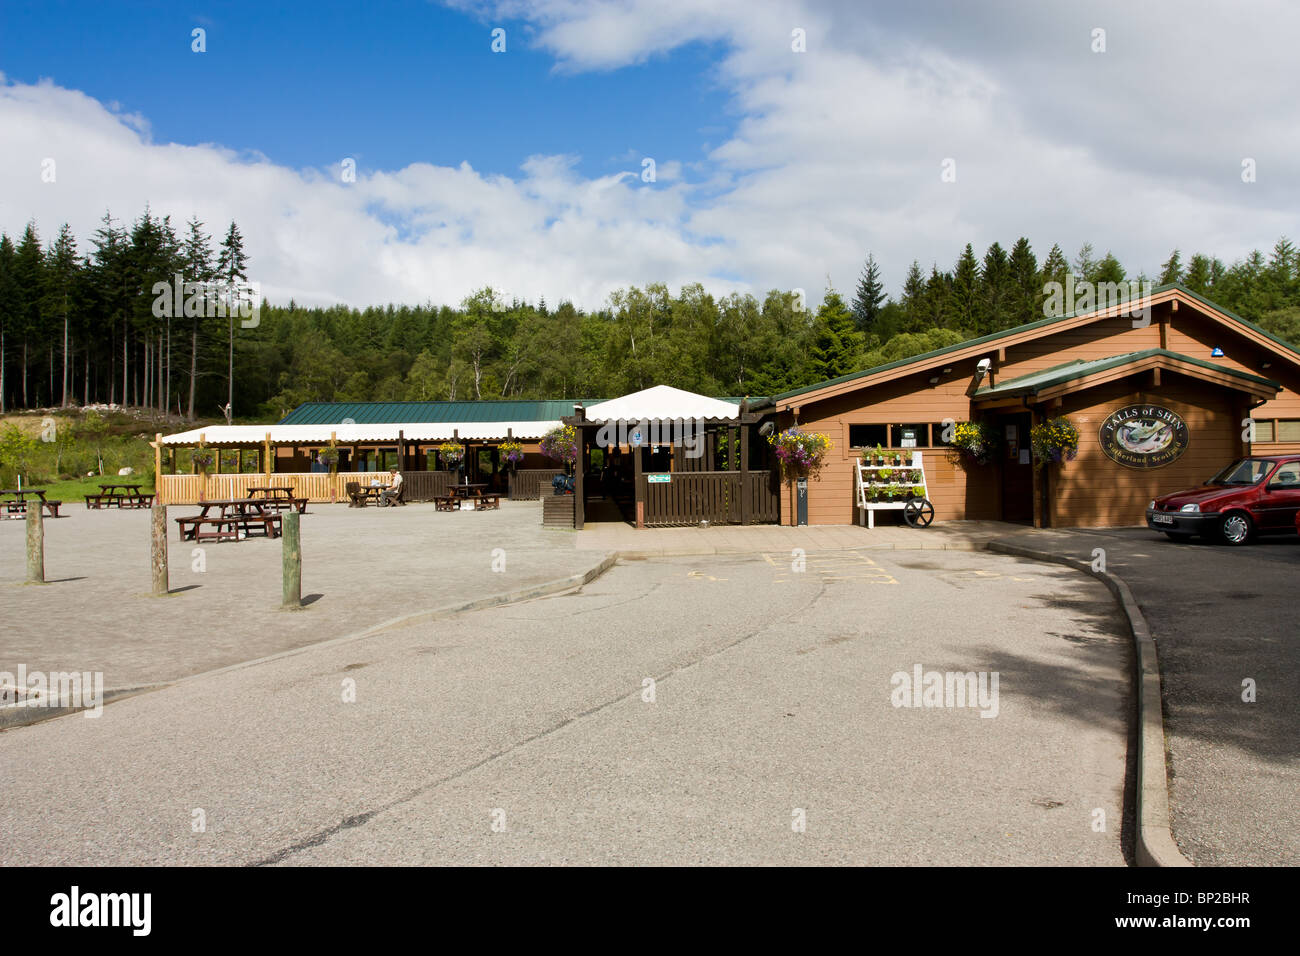 Falls of Shin visitor centre by the river shin near Lairg in the Scottish Highlands. - Stock Image